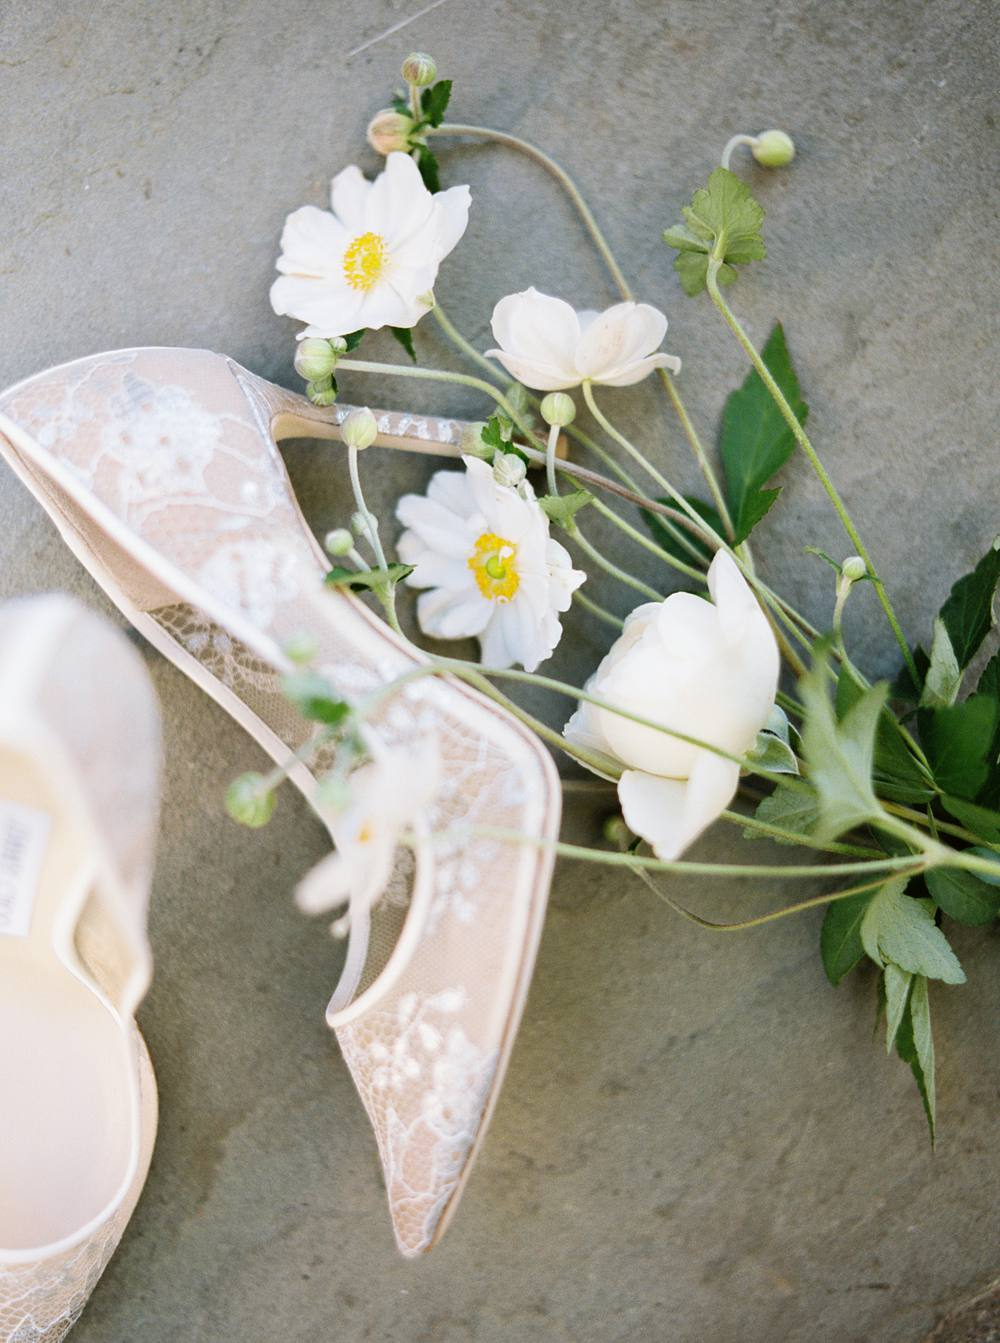 Close-up of Jimmy Choo's bridal heels resting with a small bouquet of white flowers.